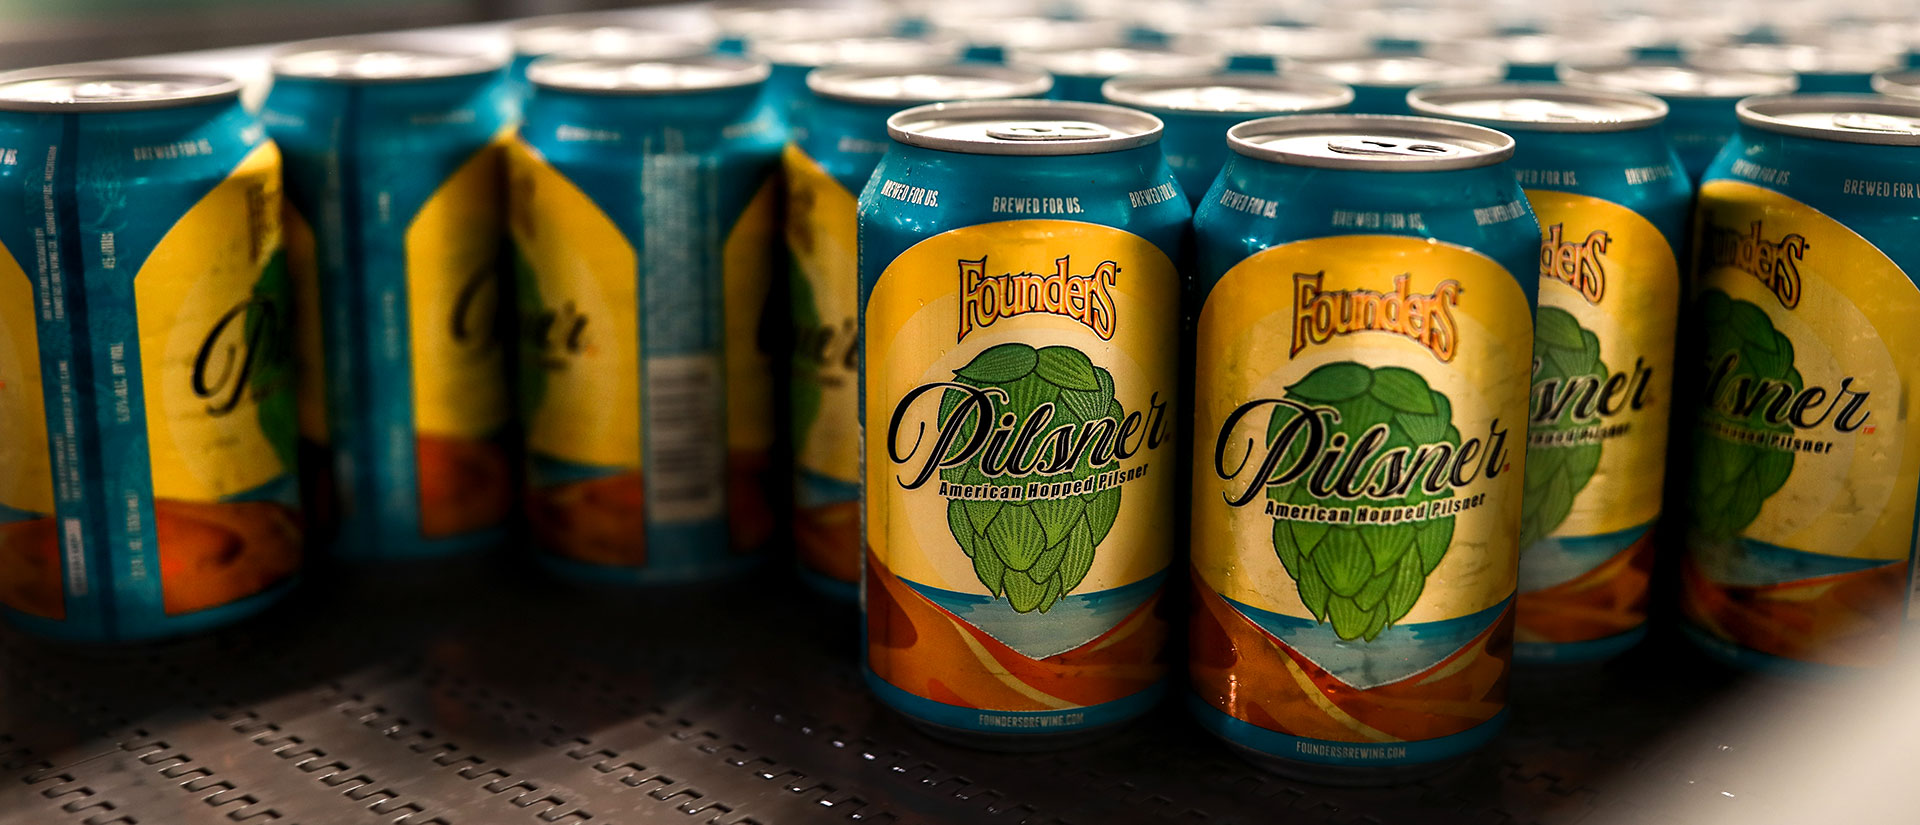 Cans of Founders Pilsner